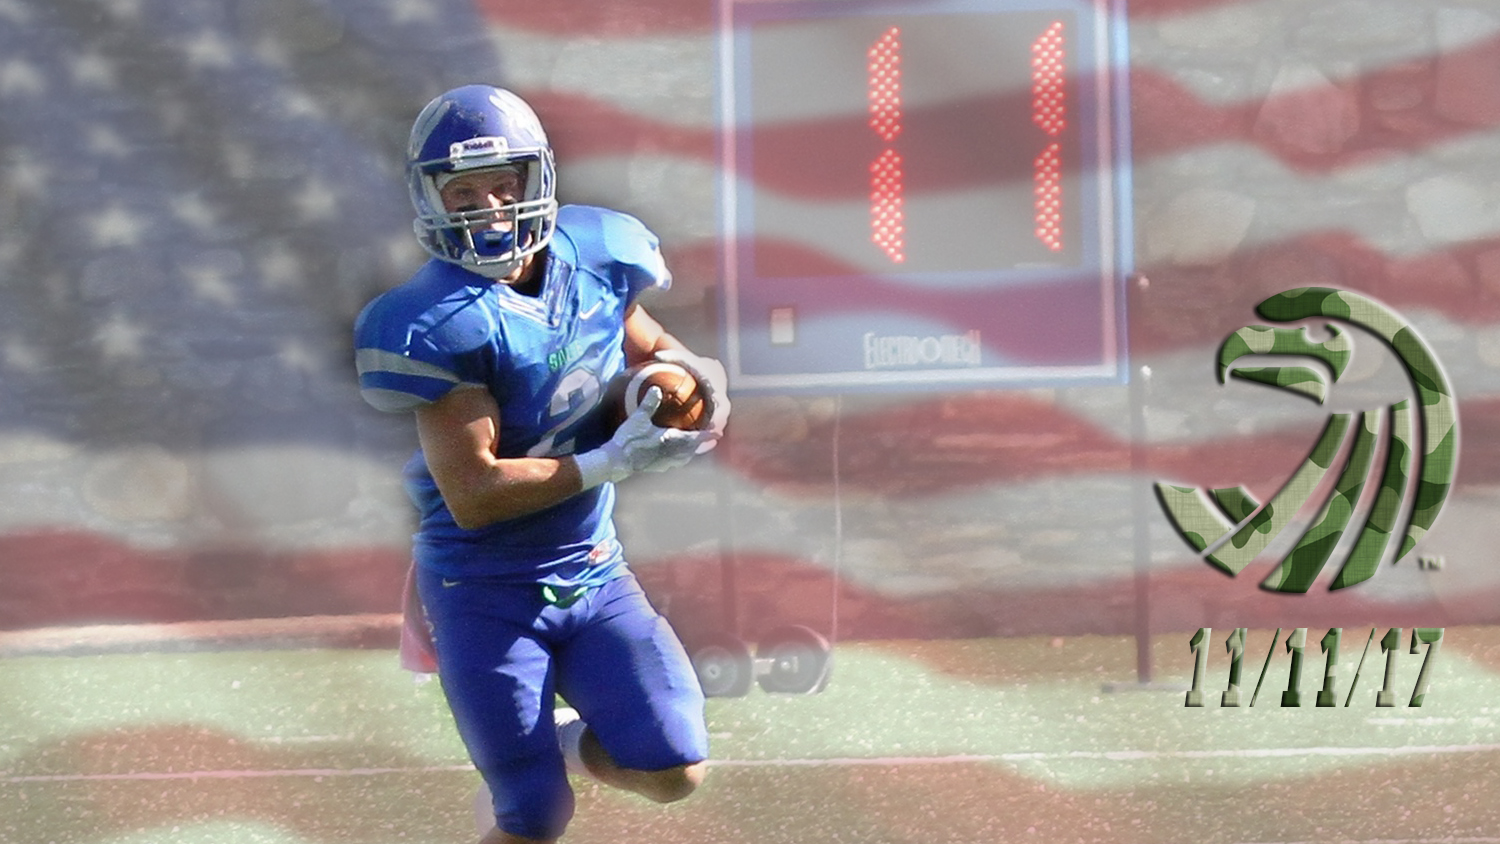 11/11/17: Military Appreciation on Veterans' Day, Senior Day, SAAC Food Drive, Sigma Theta Tau relief aid for hurricane victims ... Salve Regina football hosts Curry on Sat. (12 p.m.) at Toppa Field